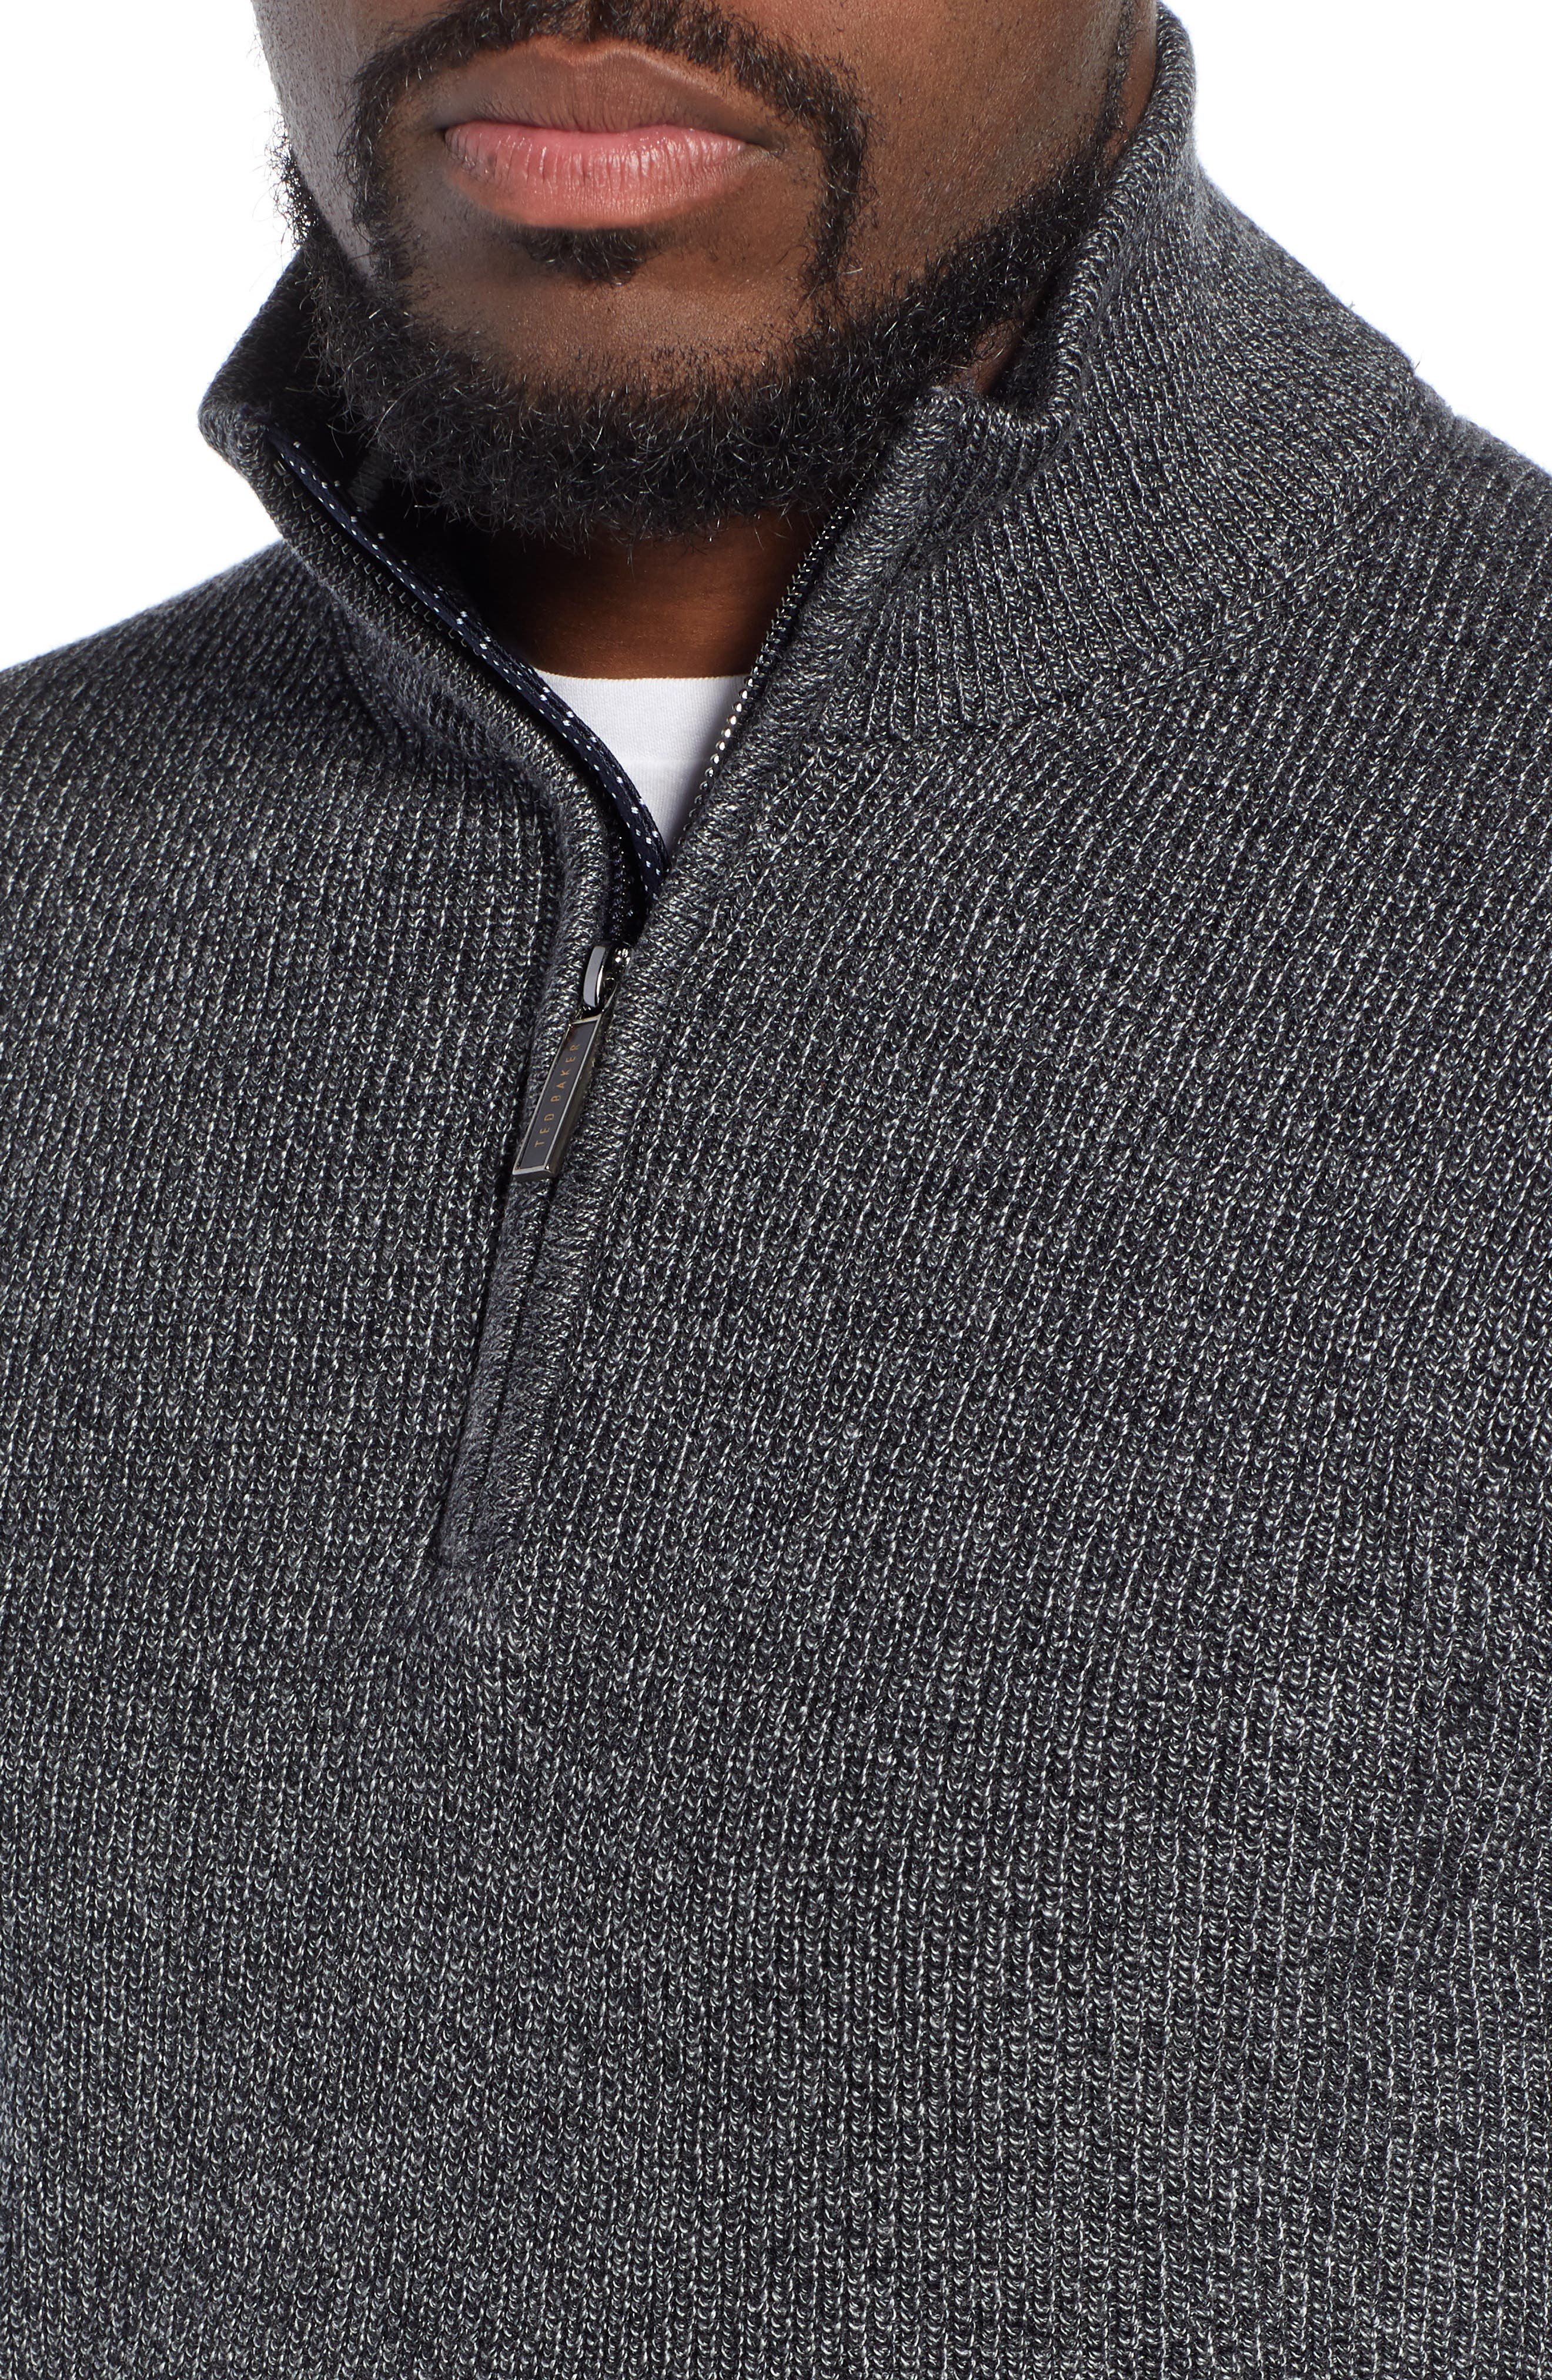 Lohas Slim Fit Funnel Neck Sweater,                             Alternate thumbnail 4, color,                             CHARCOAL